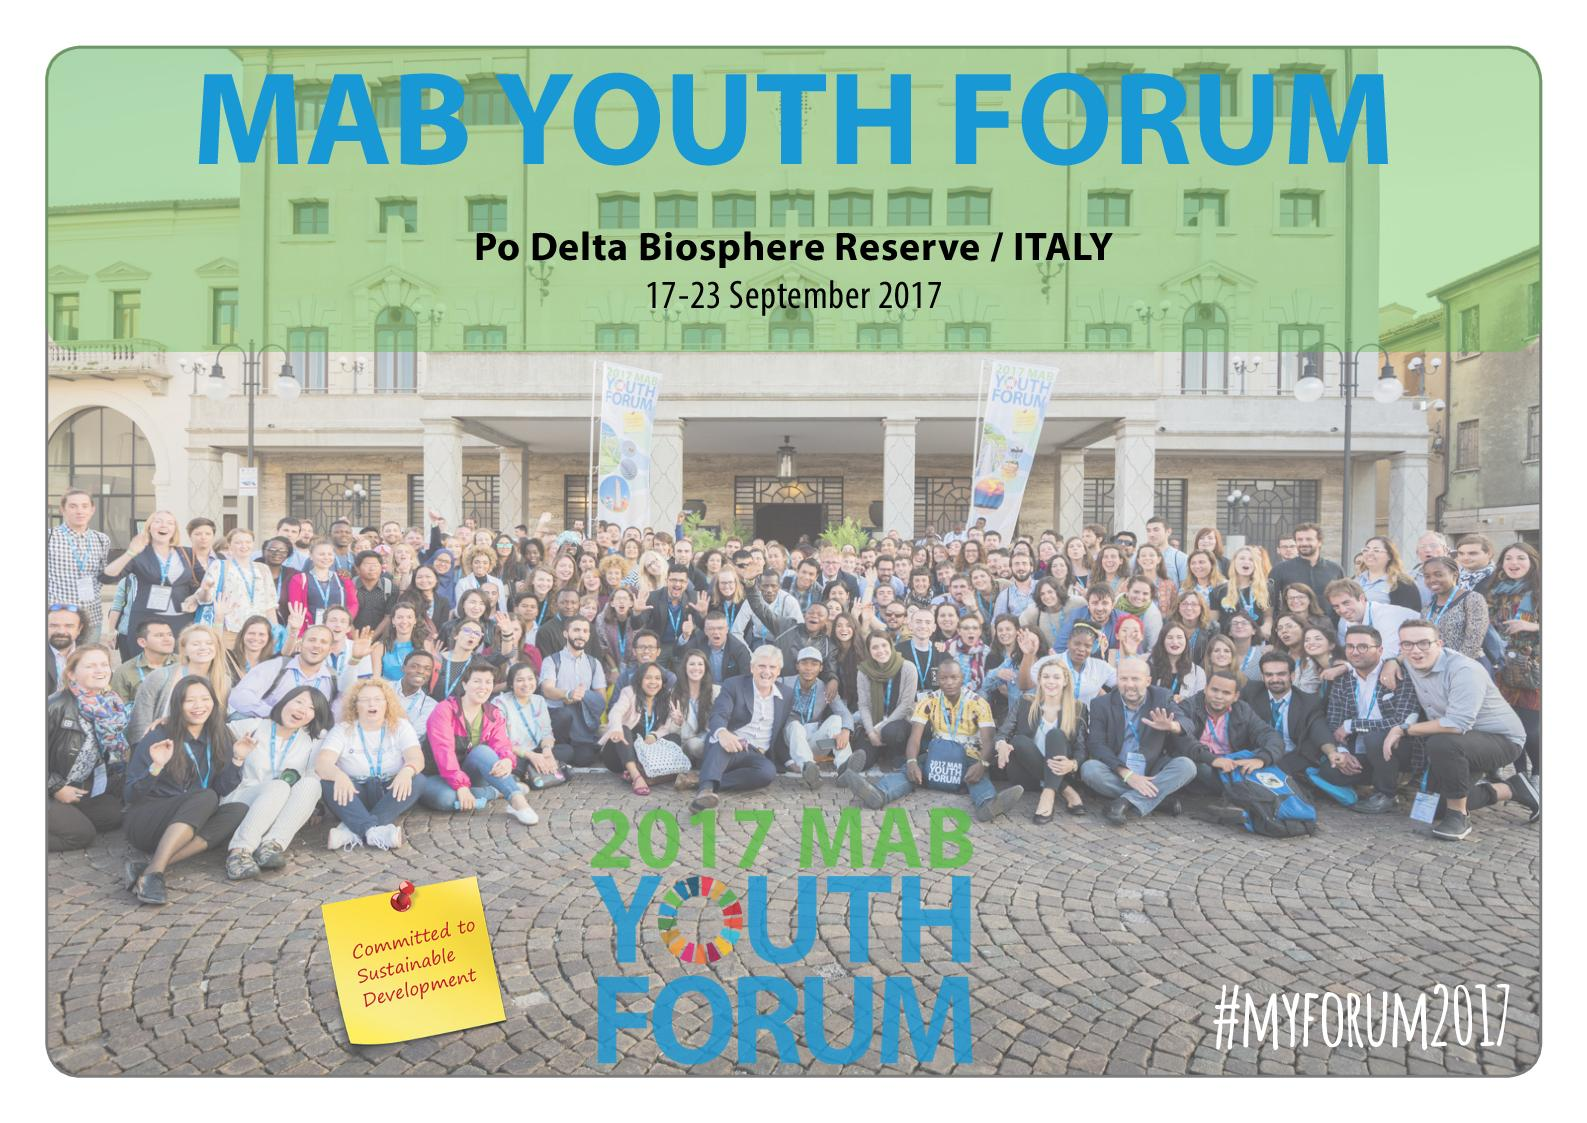 MAB YOUTH FORUM 2017